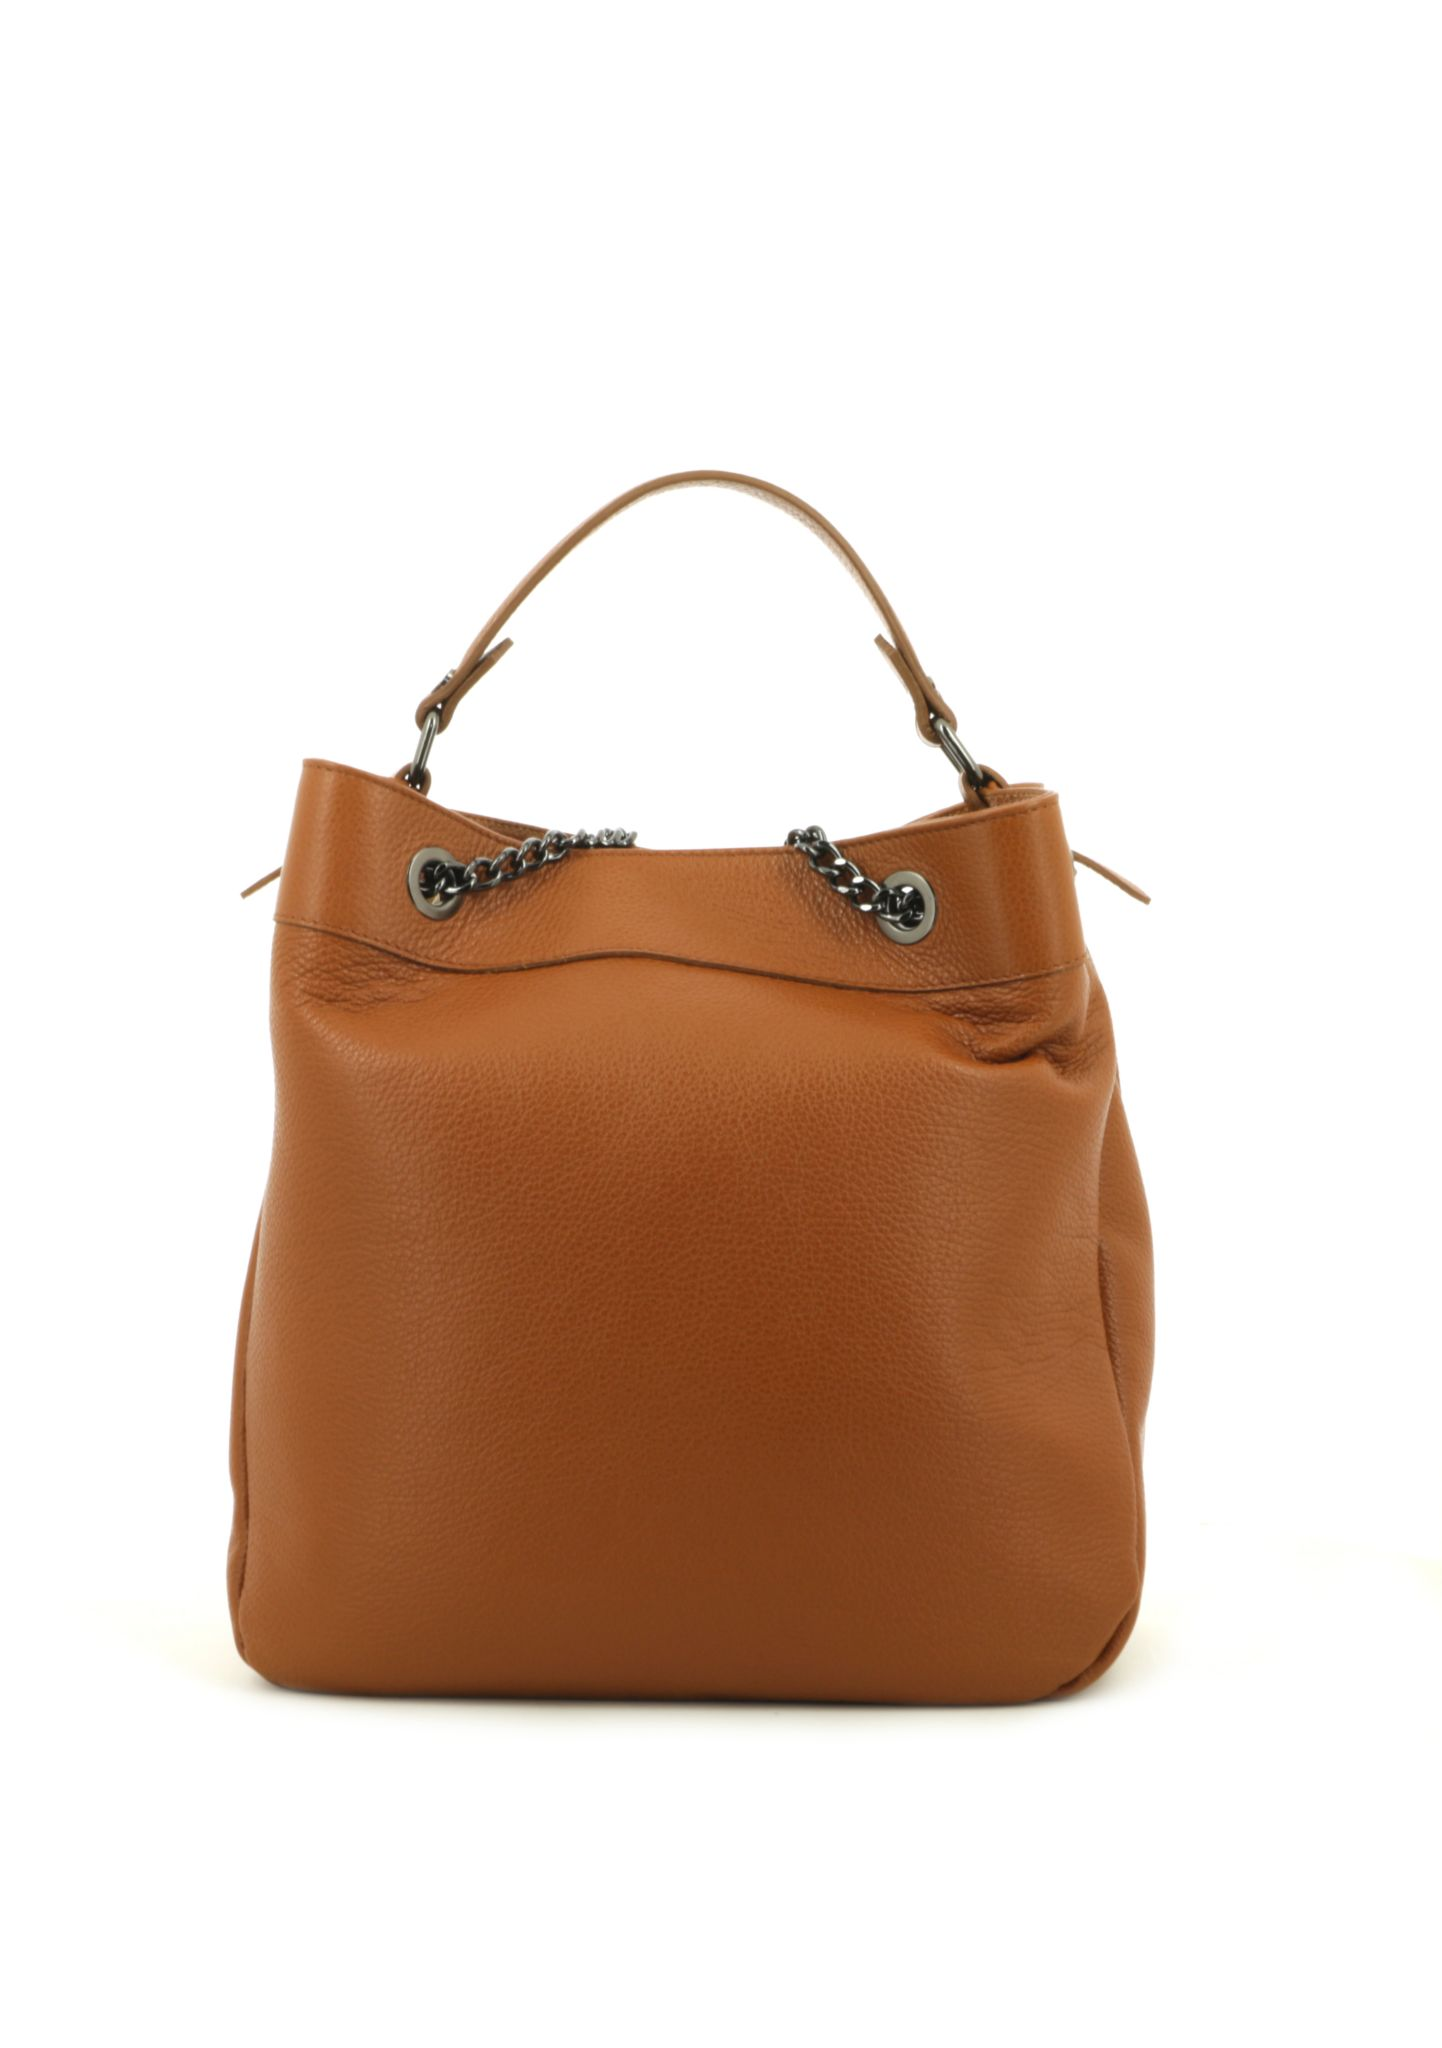 Cognac Shoulder Bag With Chain Strap 033 detail 3